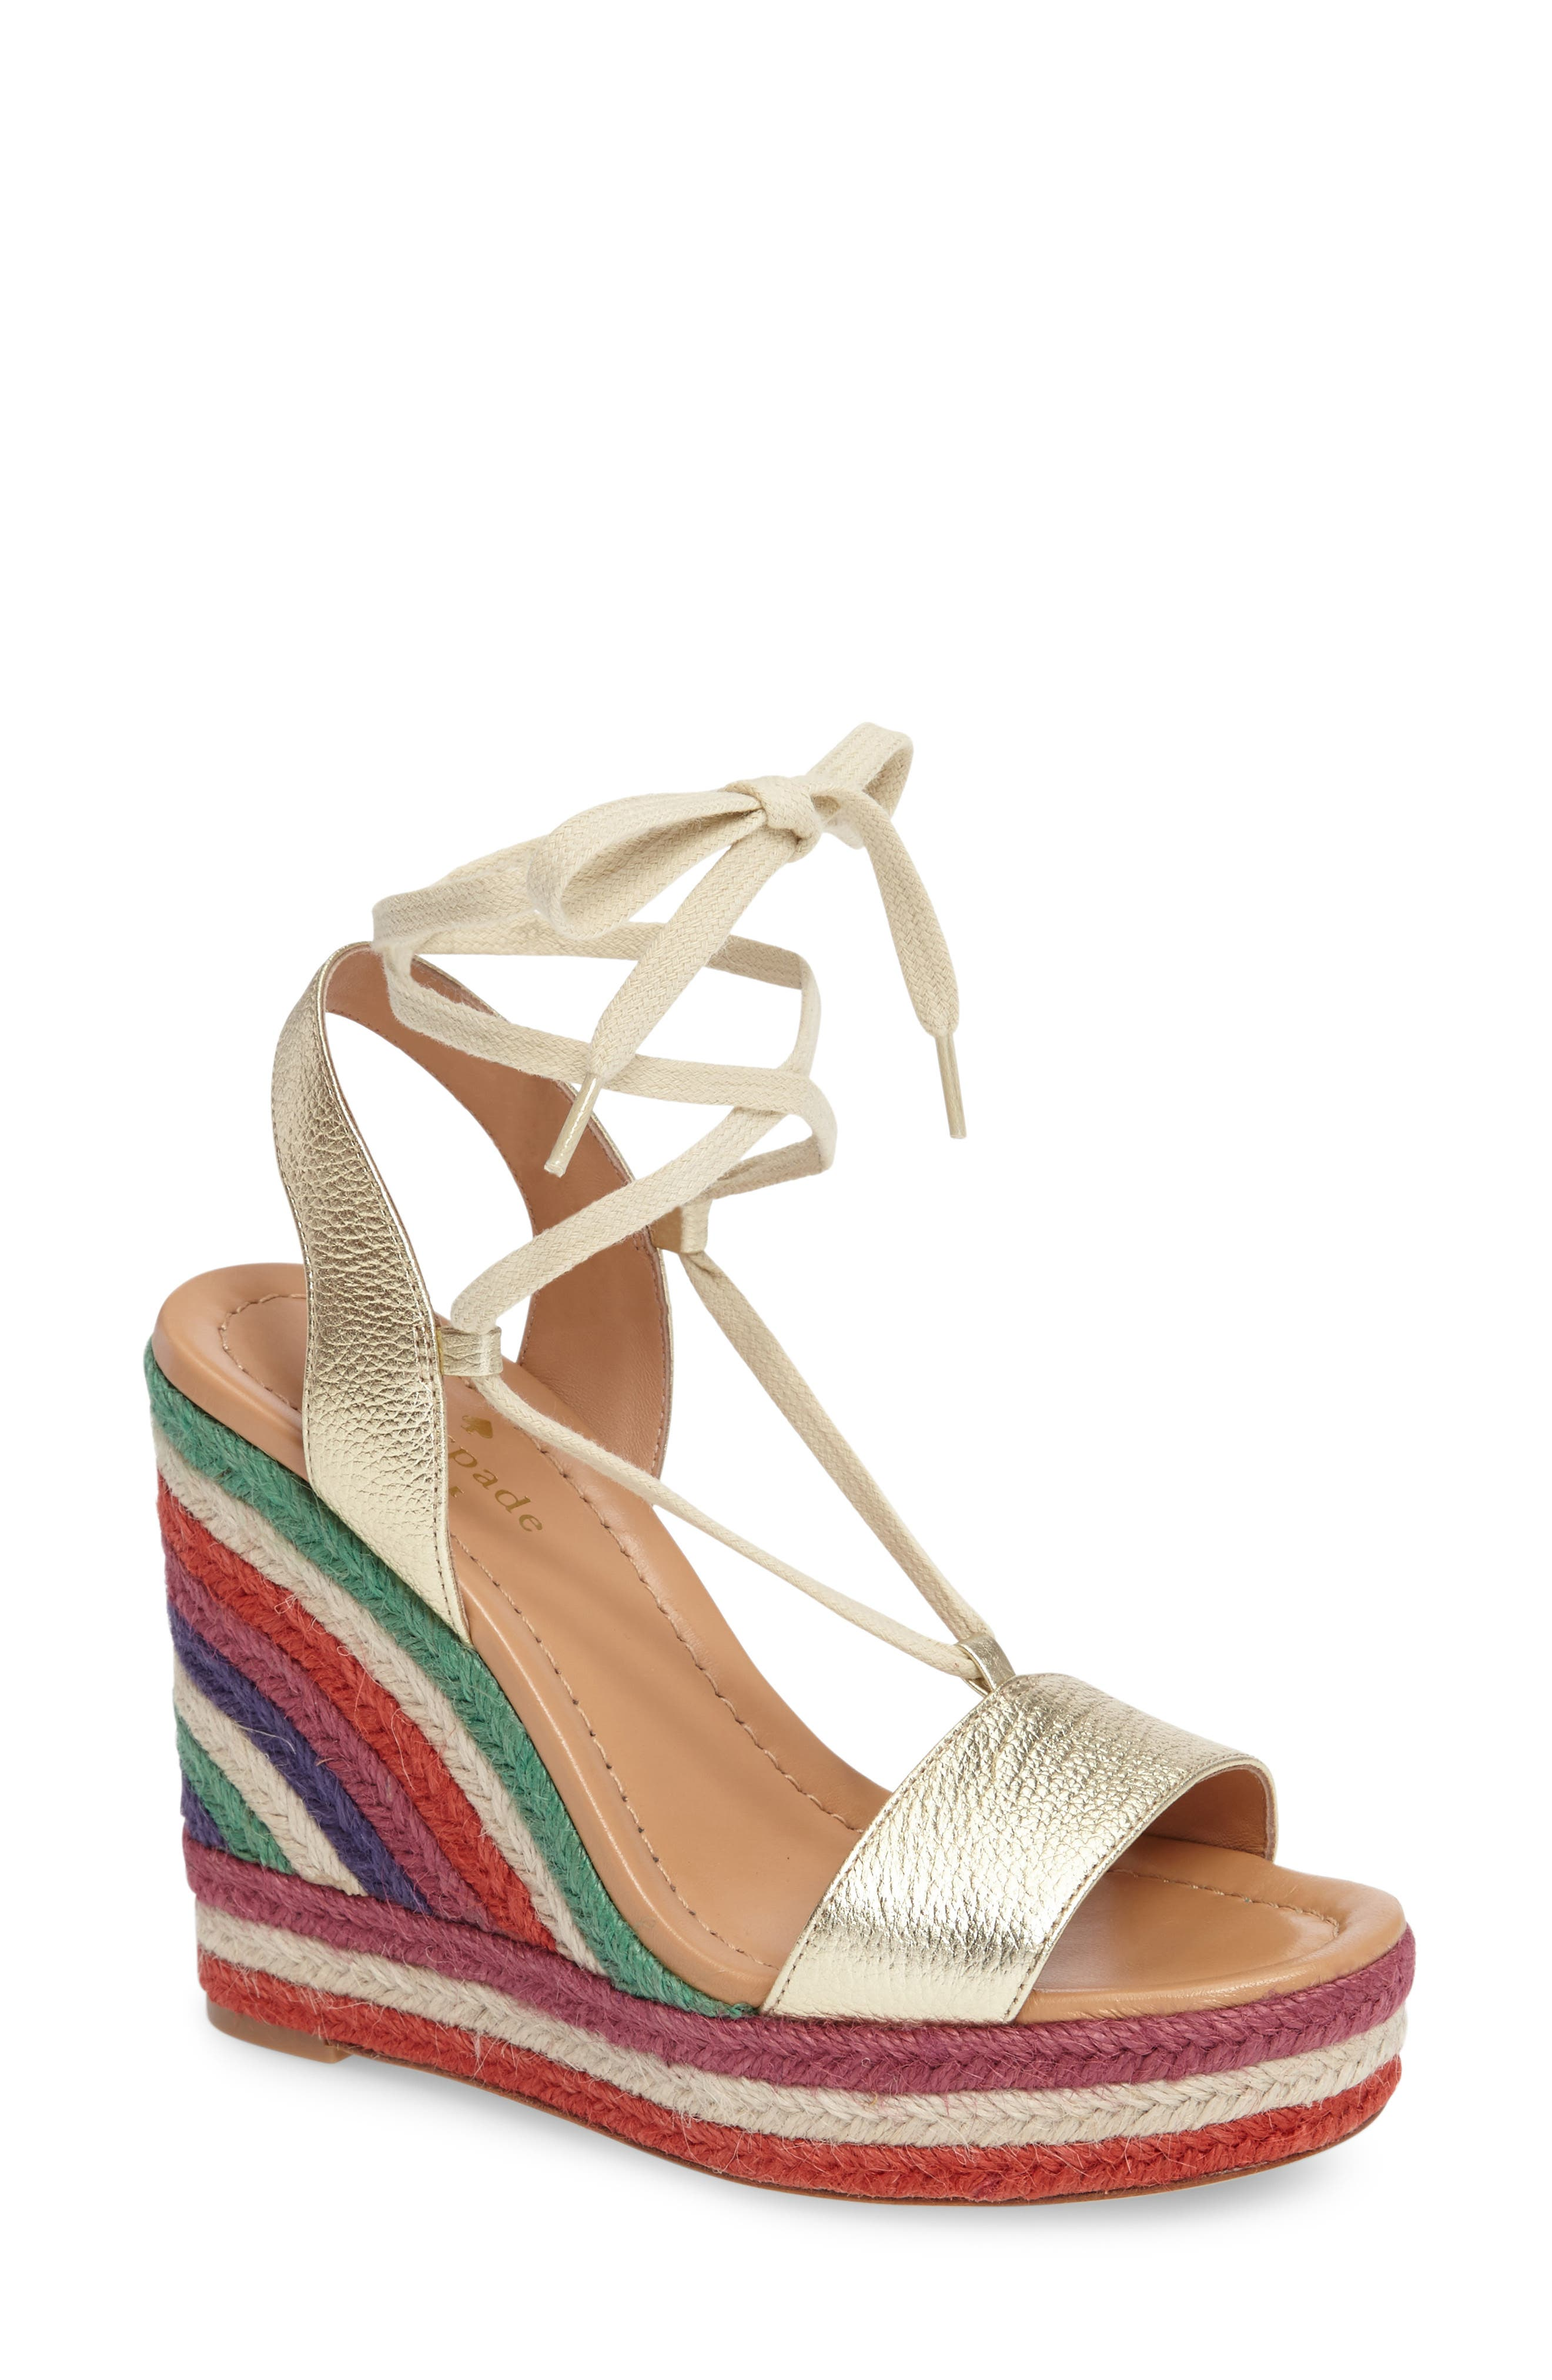 Alternate Image 1 Selected - kate spade new york daisy too platform wedge espadrille (Women)